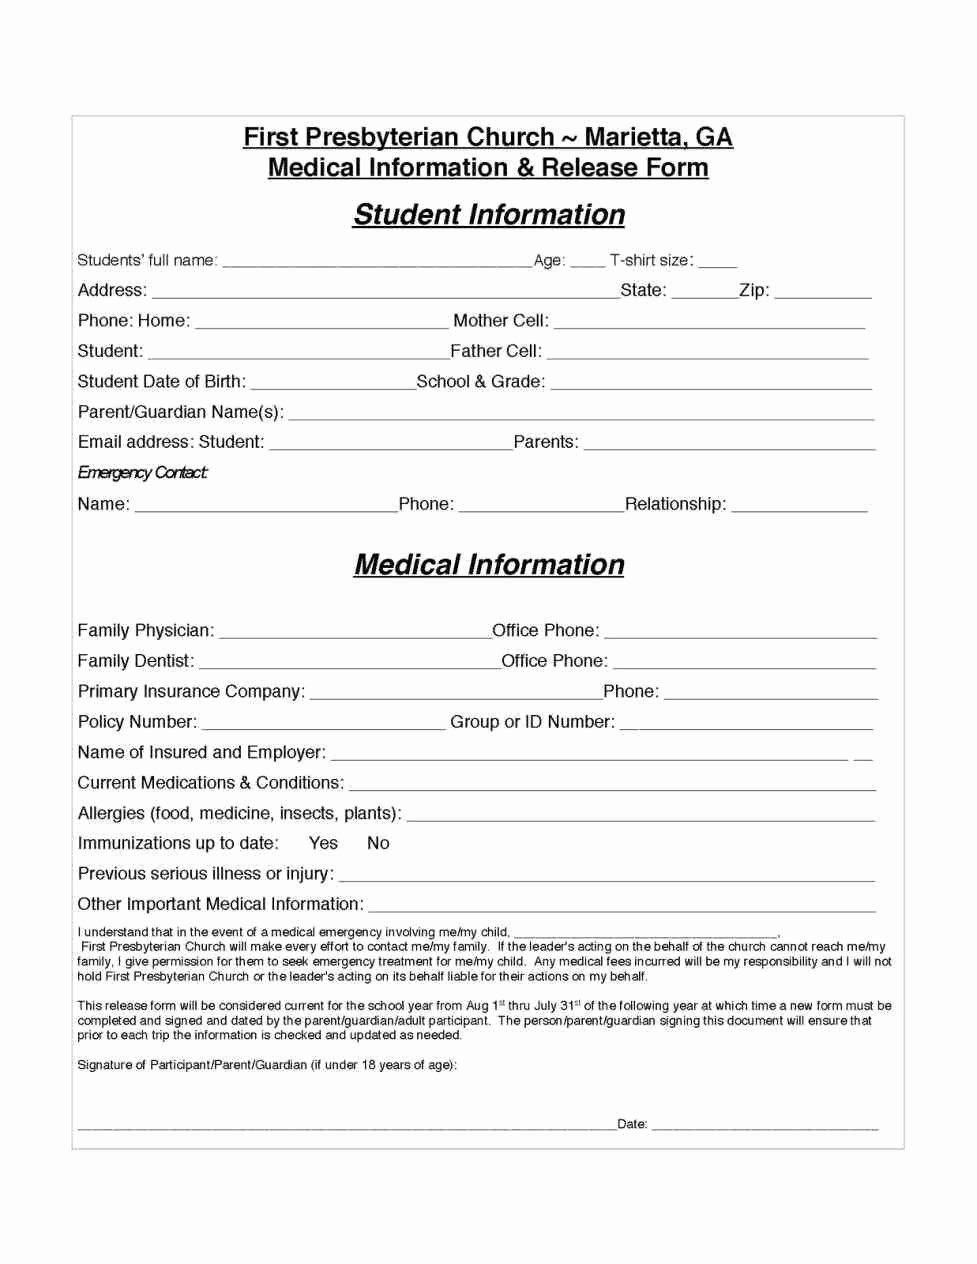 Parent Release form Template Elegant Parental Release form Template Sampletemplatez